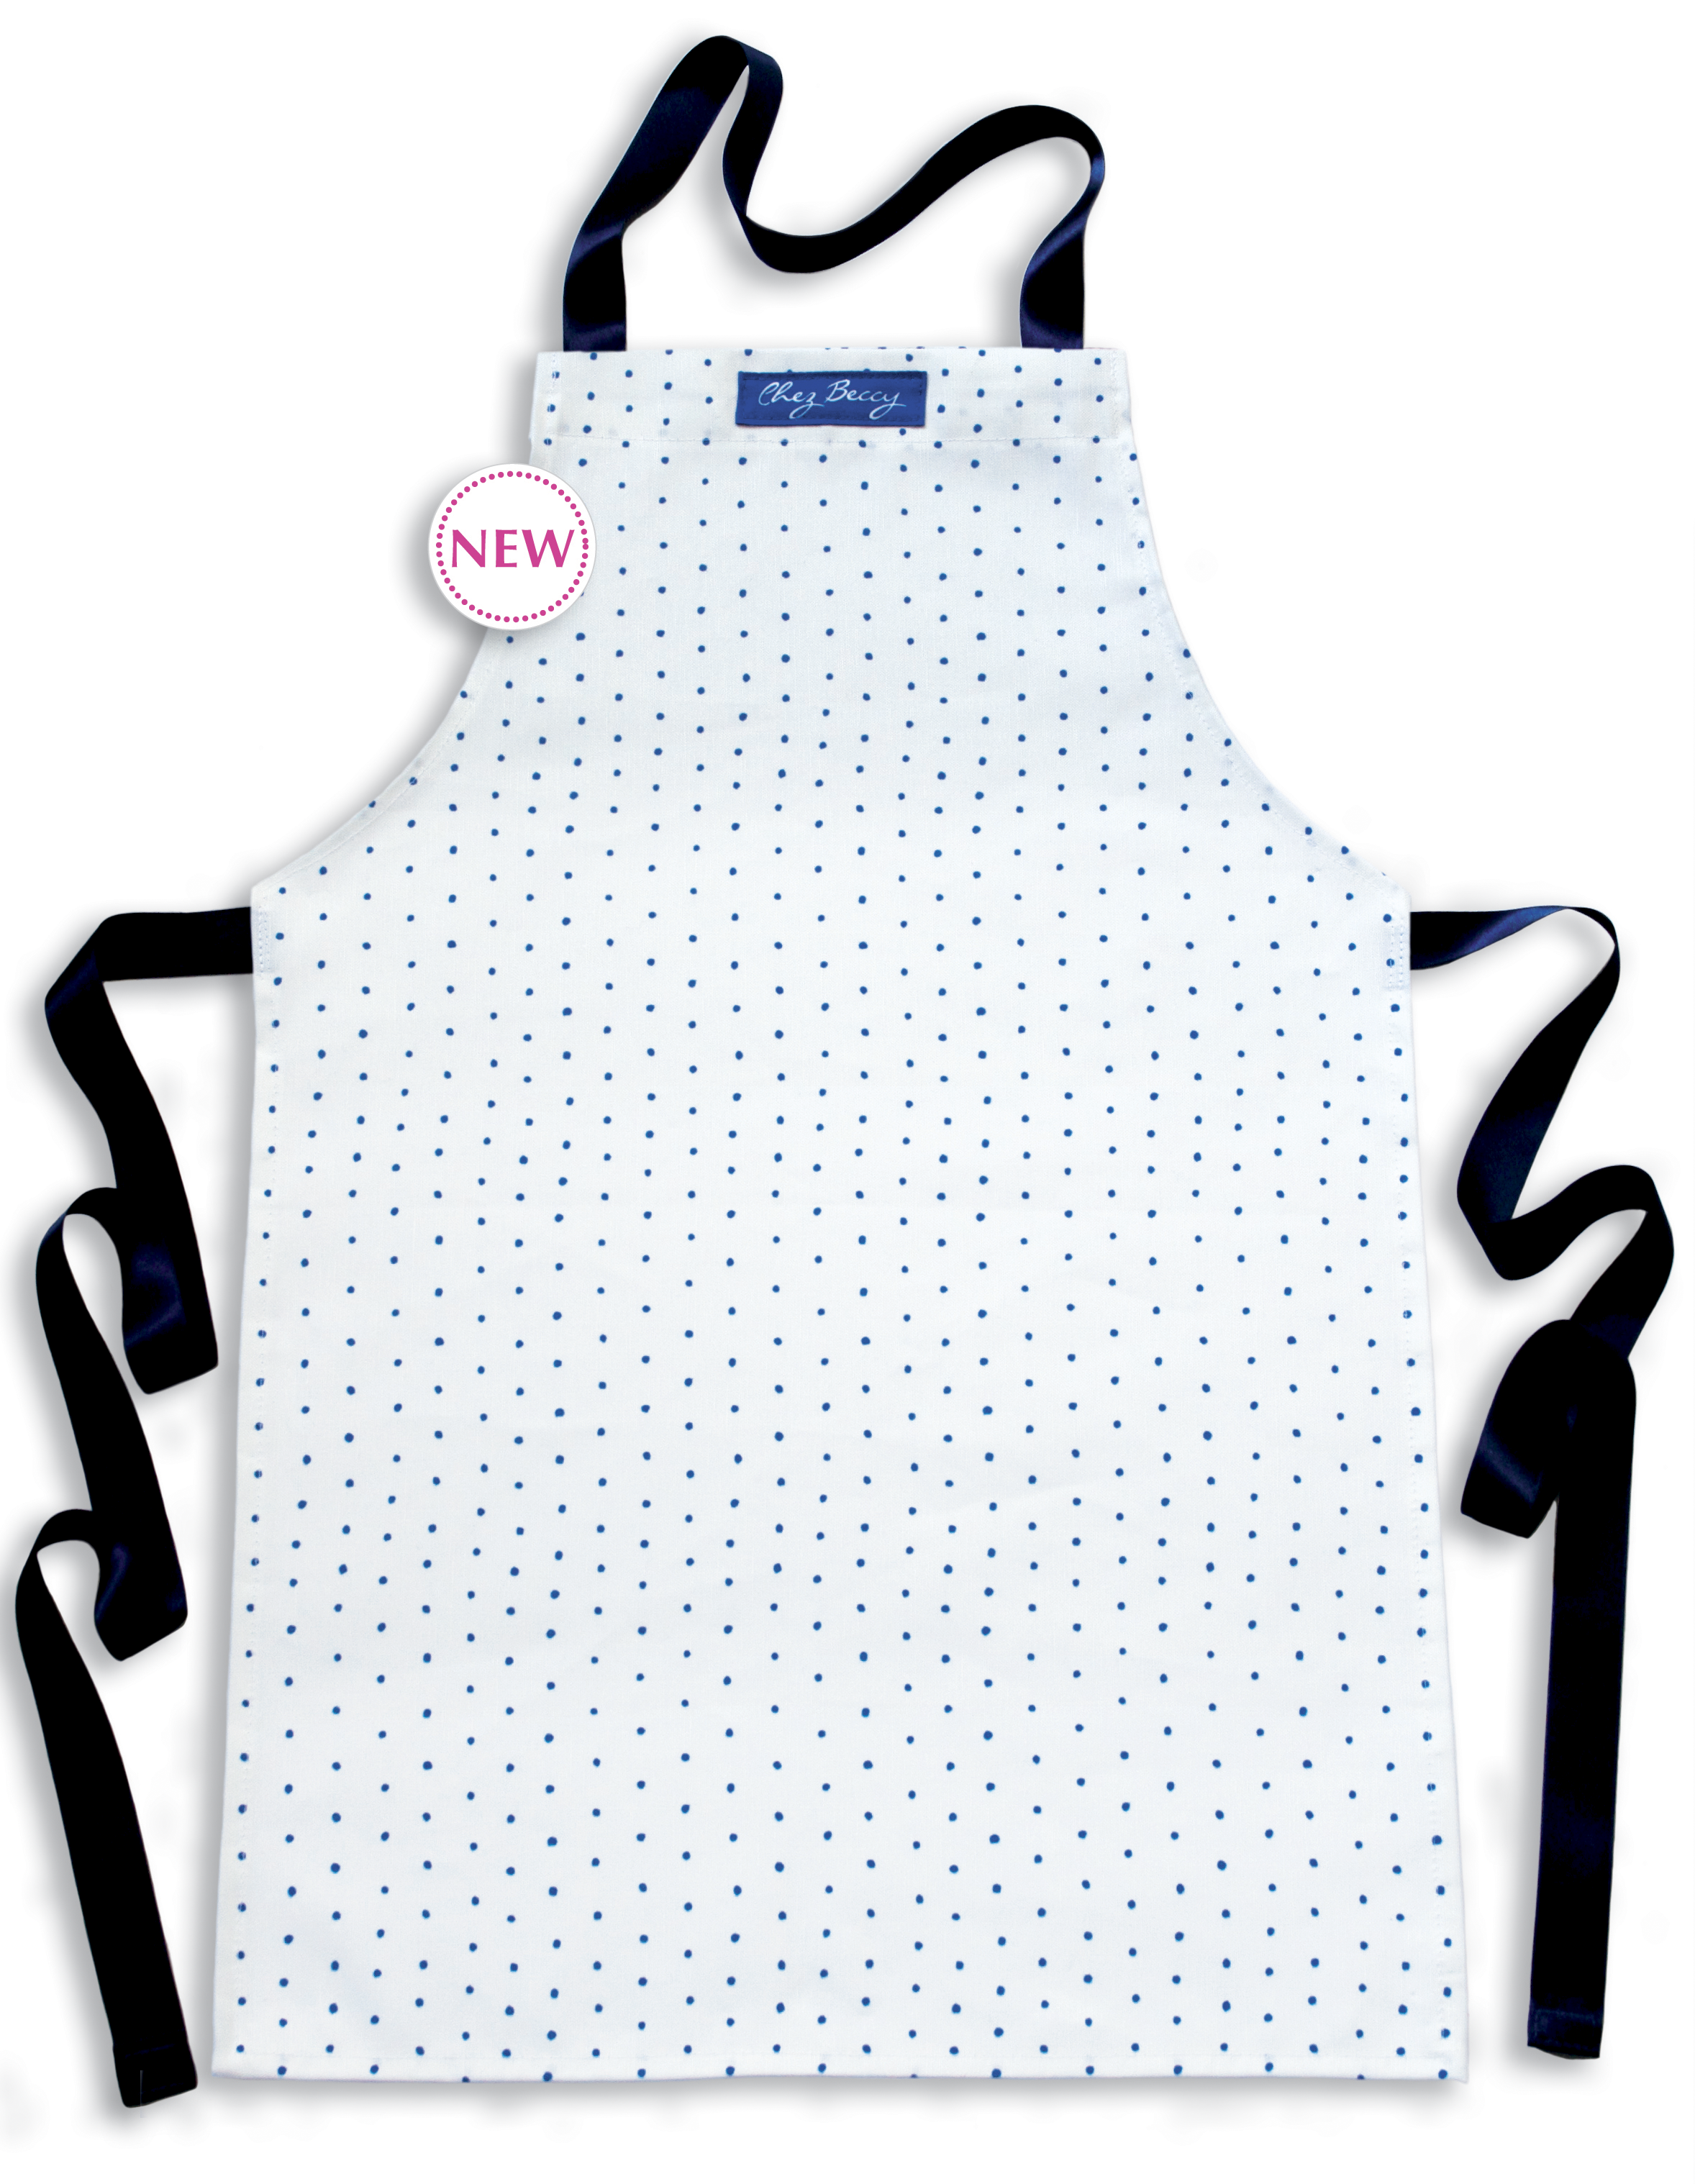 NEW- Blue& White Polka Dot Children's Apron, Ages 7-11 £13 This delightful apron will keep your childs clothes clean and protected while they create delicious treats for you in the kitchen!The fabric design is beautifully hand painted and digitally printed using environmentally friendly water based inks.  ChezBeccy.folksy.com